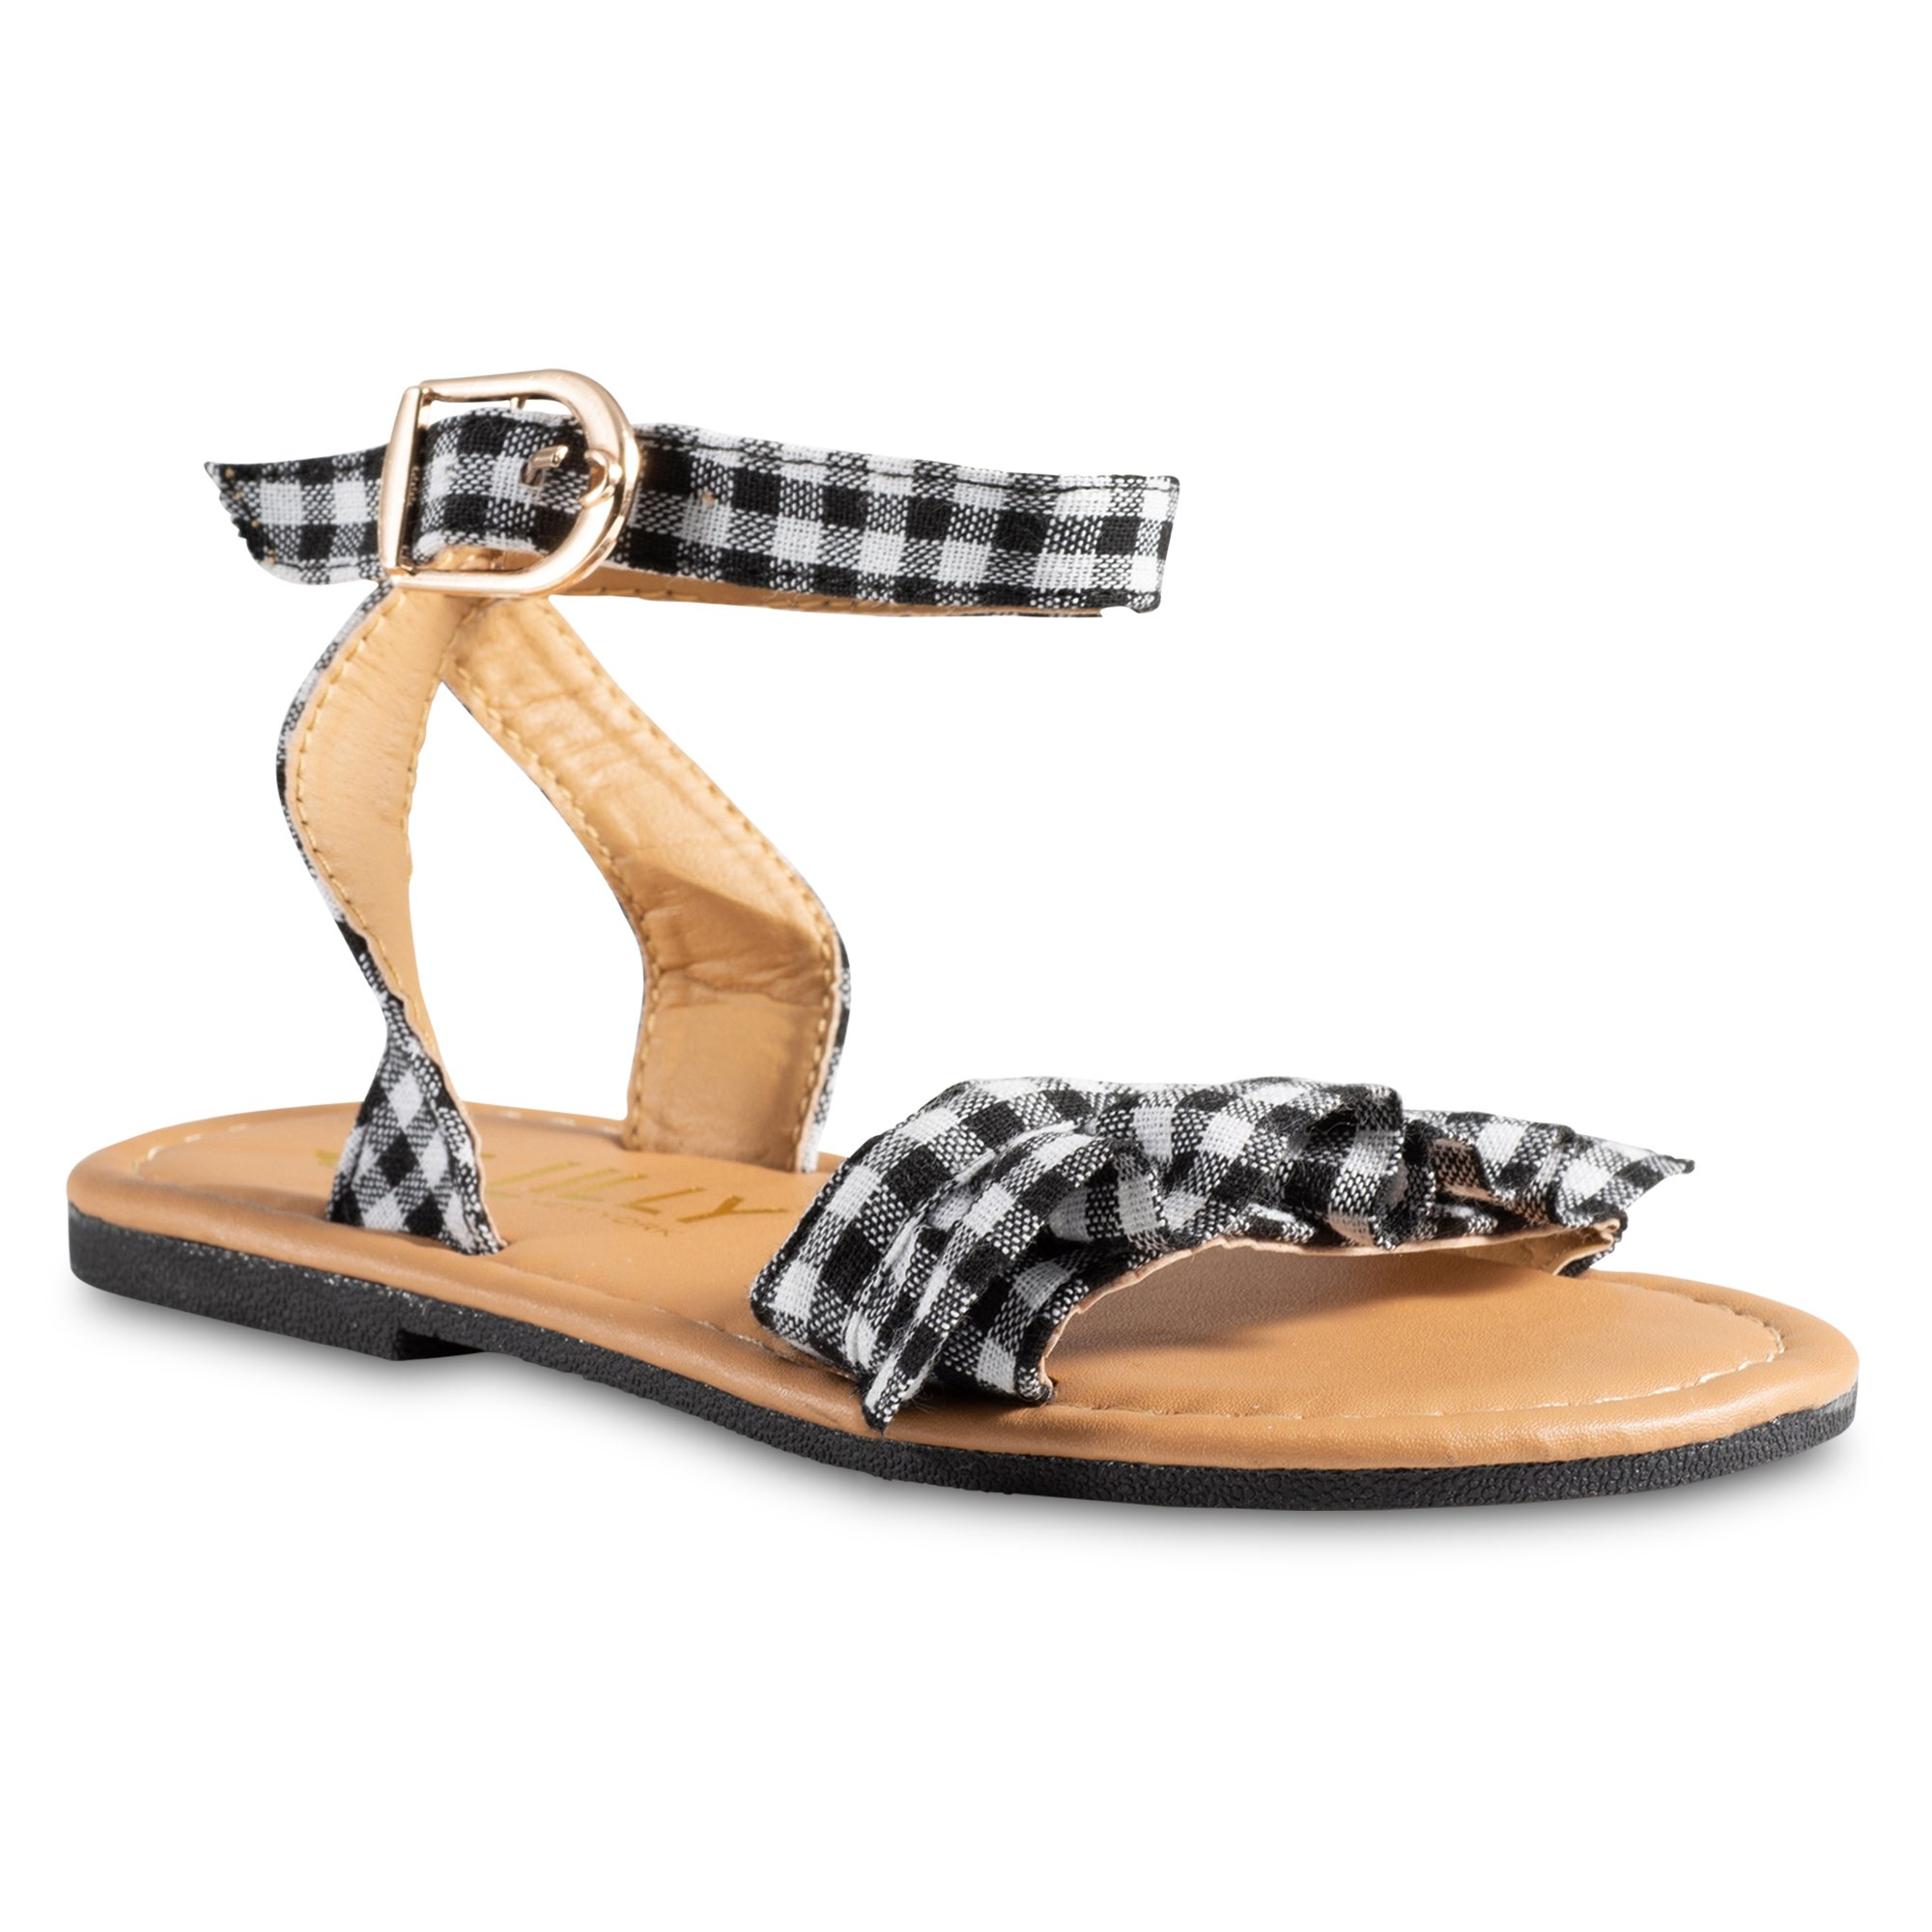 Chillipop Pink, Yellow Black Gingham w/Ruffle Sandals, Available in All Sizes